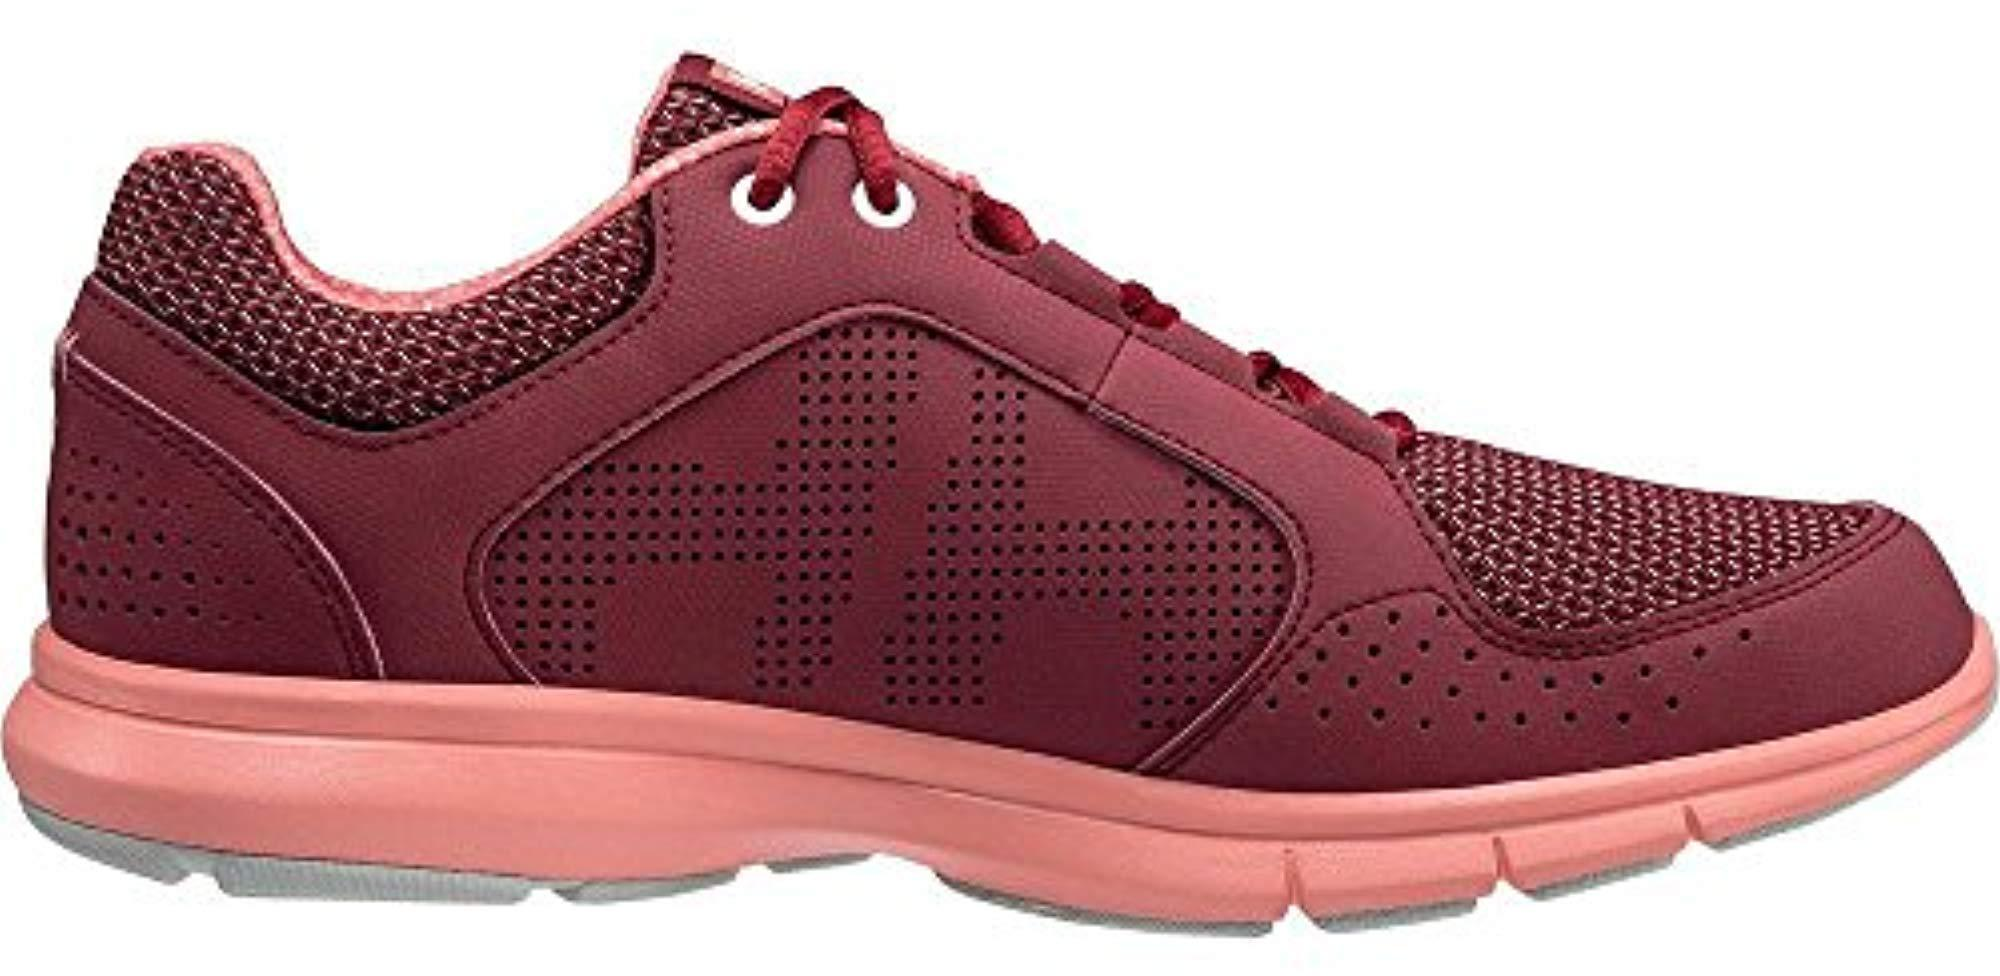 Helly Hansen Rubber S/ladies Ahiga V3 Hydropower Breathable Boat Shoes in Plum/Shell Pink/Light (Red)